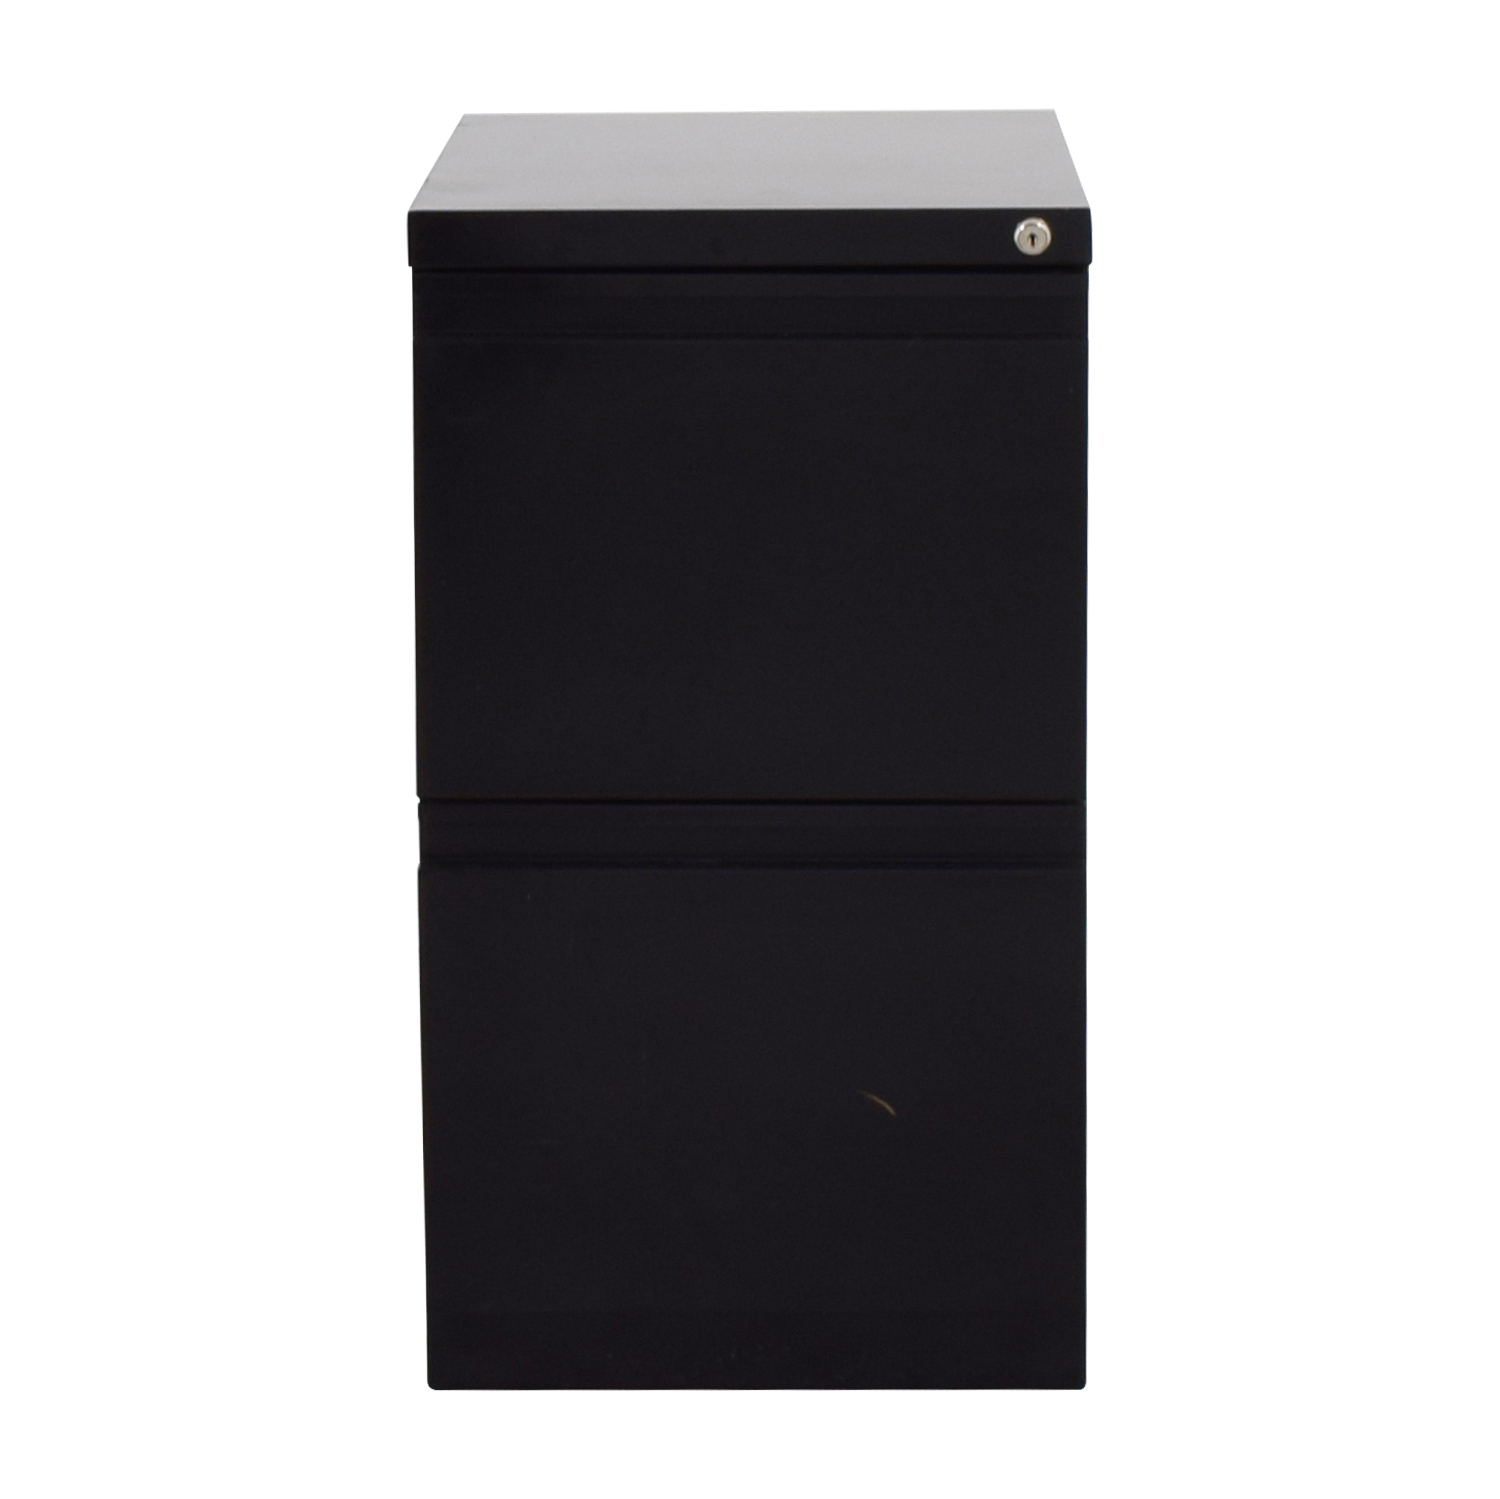 Staples Staples 2-Drawer Mobile Pedestal File Cabinet dimensions